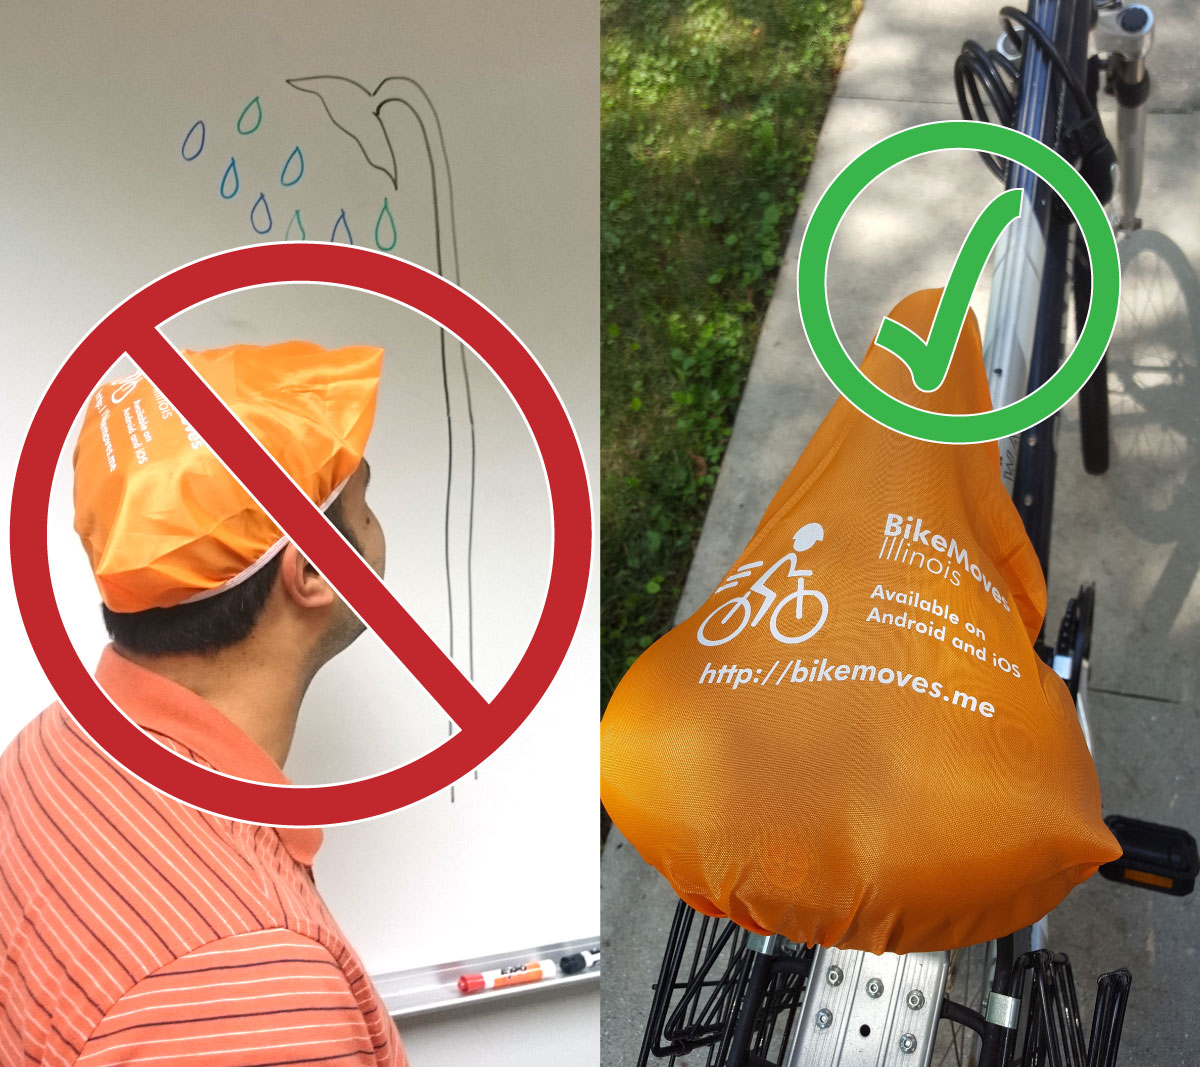 In the incorrect example, the bike seat cover is worn as a shower cap. In the correct example, it is placed on a bicycle seat.